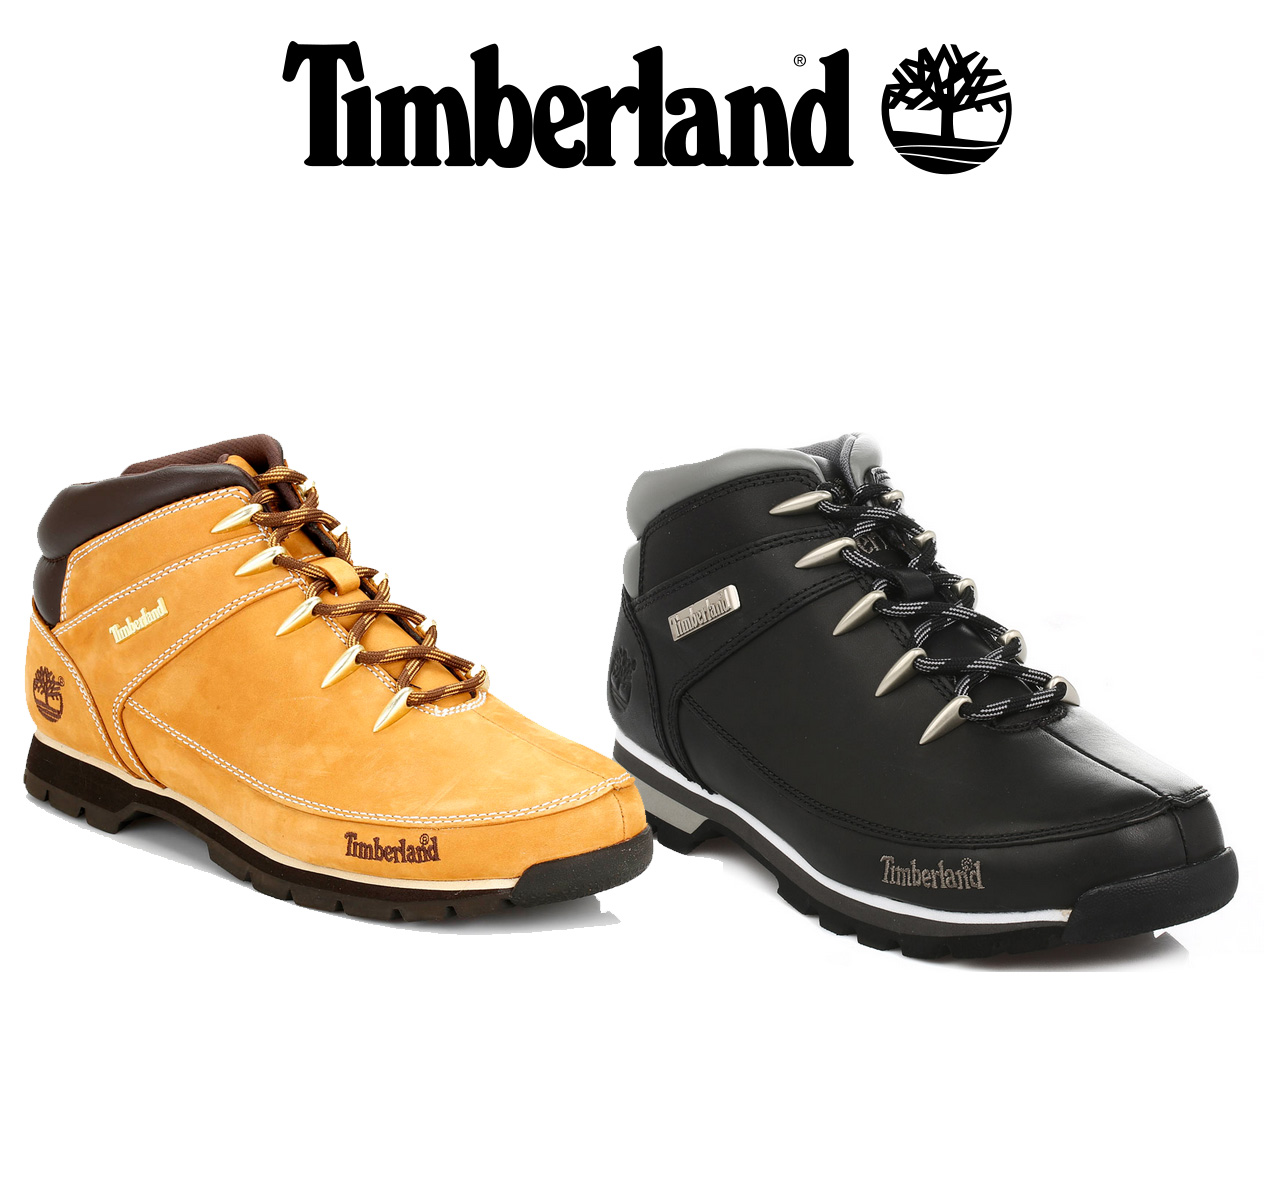 Details about Timberland Mens Euro Sprint Hiker Boots, Black or Wheat Yellow, Leather Shoes